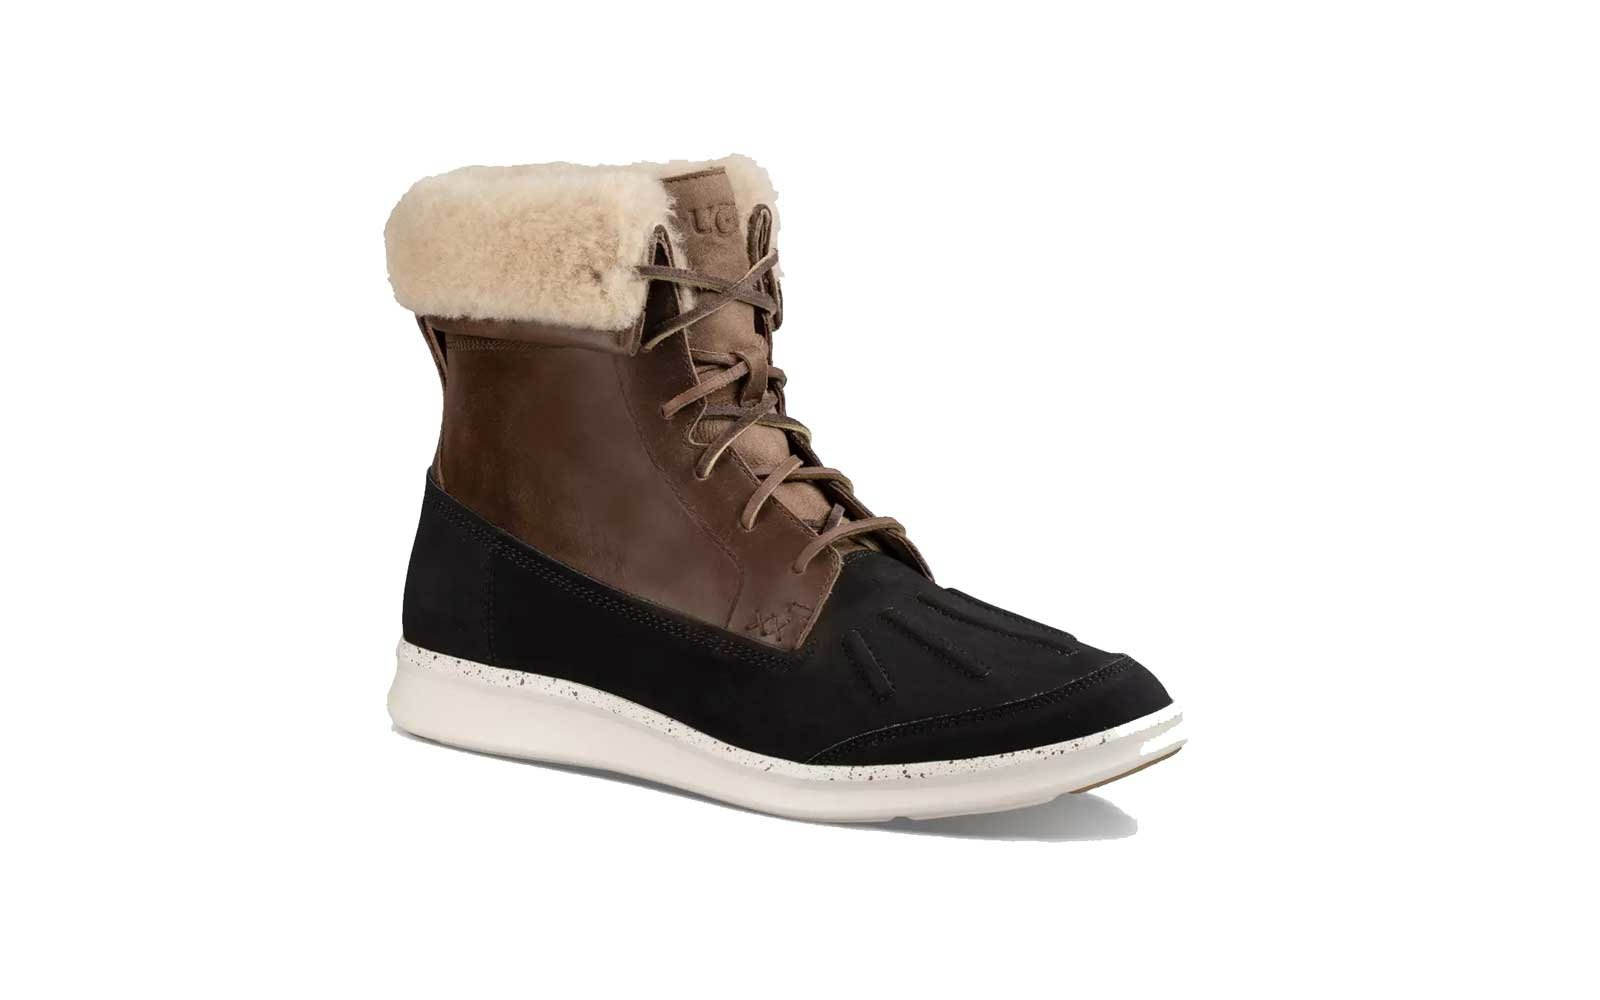 dress - Stylish mens winter boots video